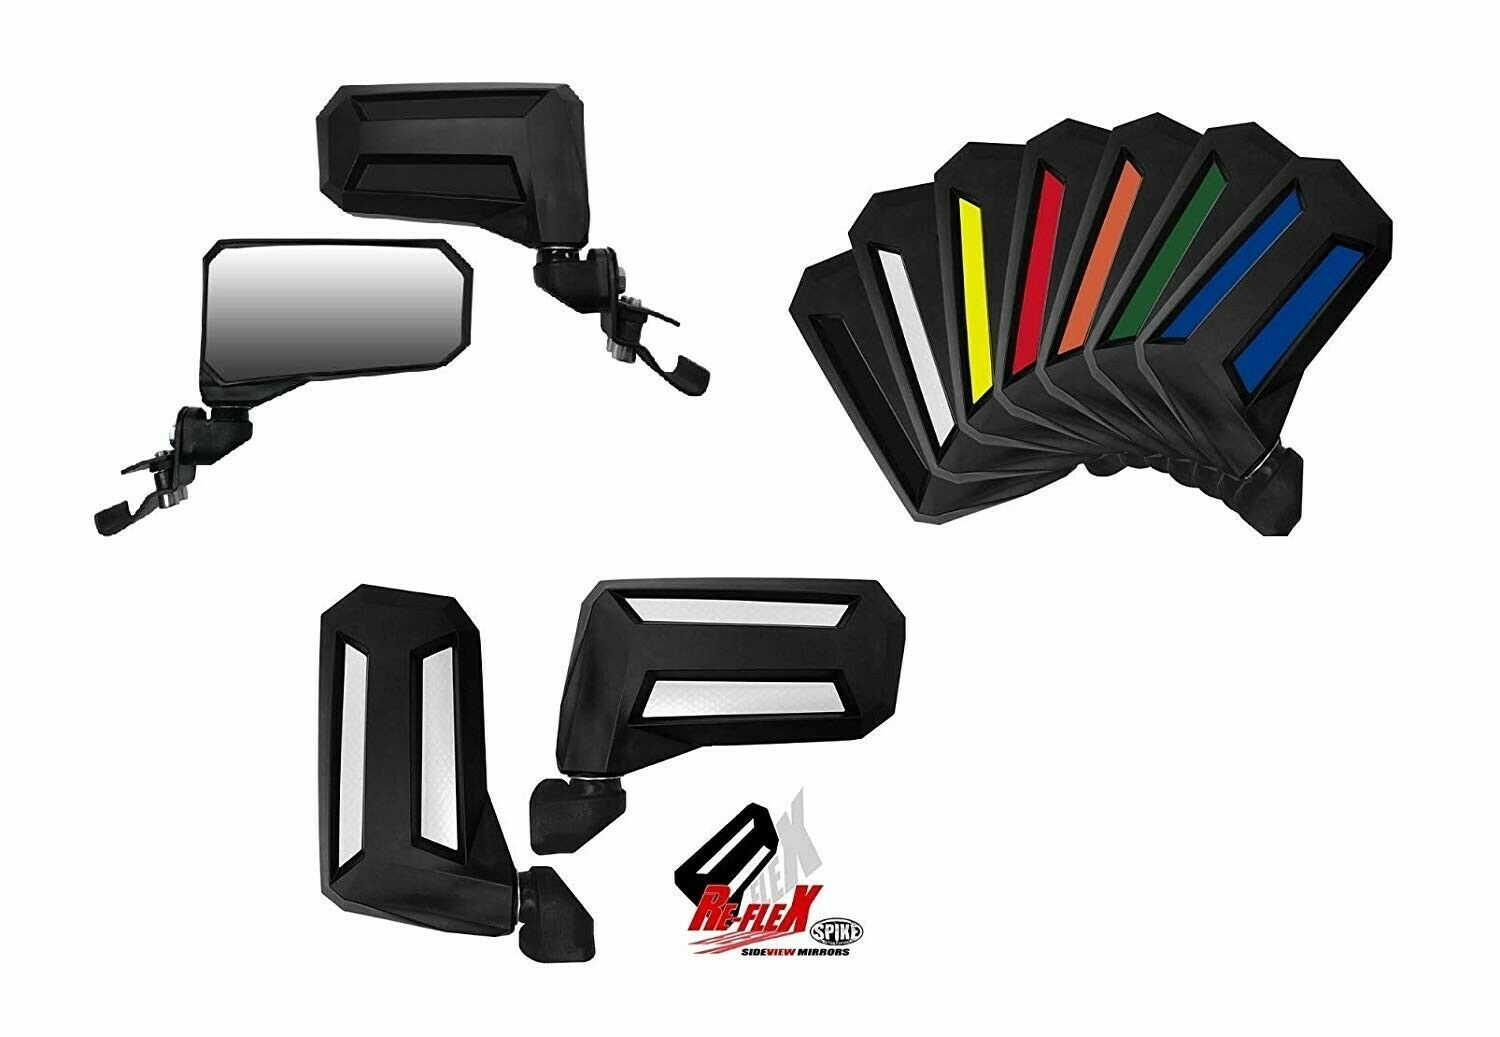 Spike Wide View Side Folding Mirror Set (2) Pro Fit Cage Mount Polaris/ Can AM